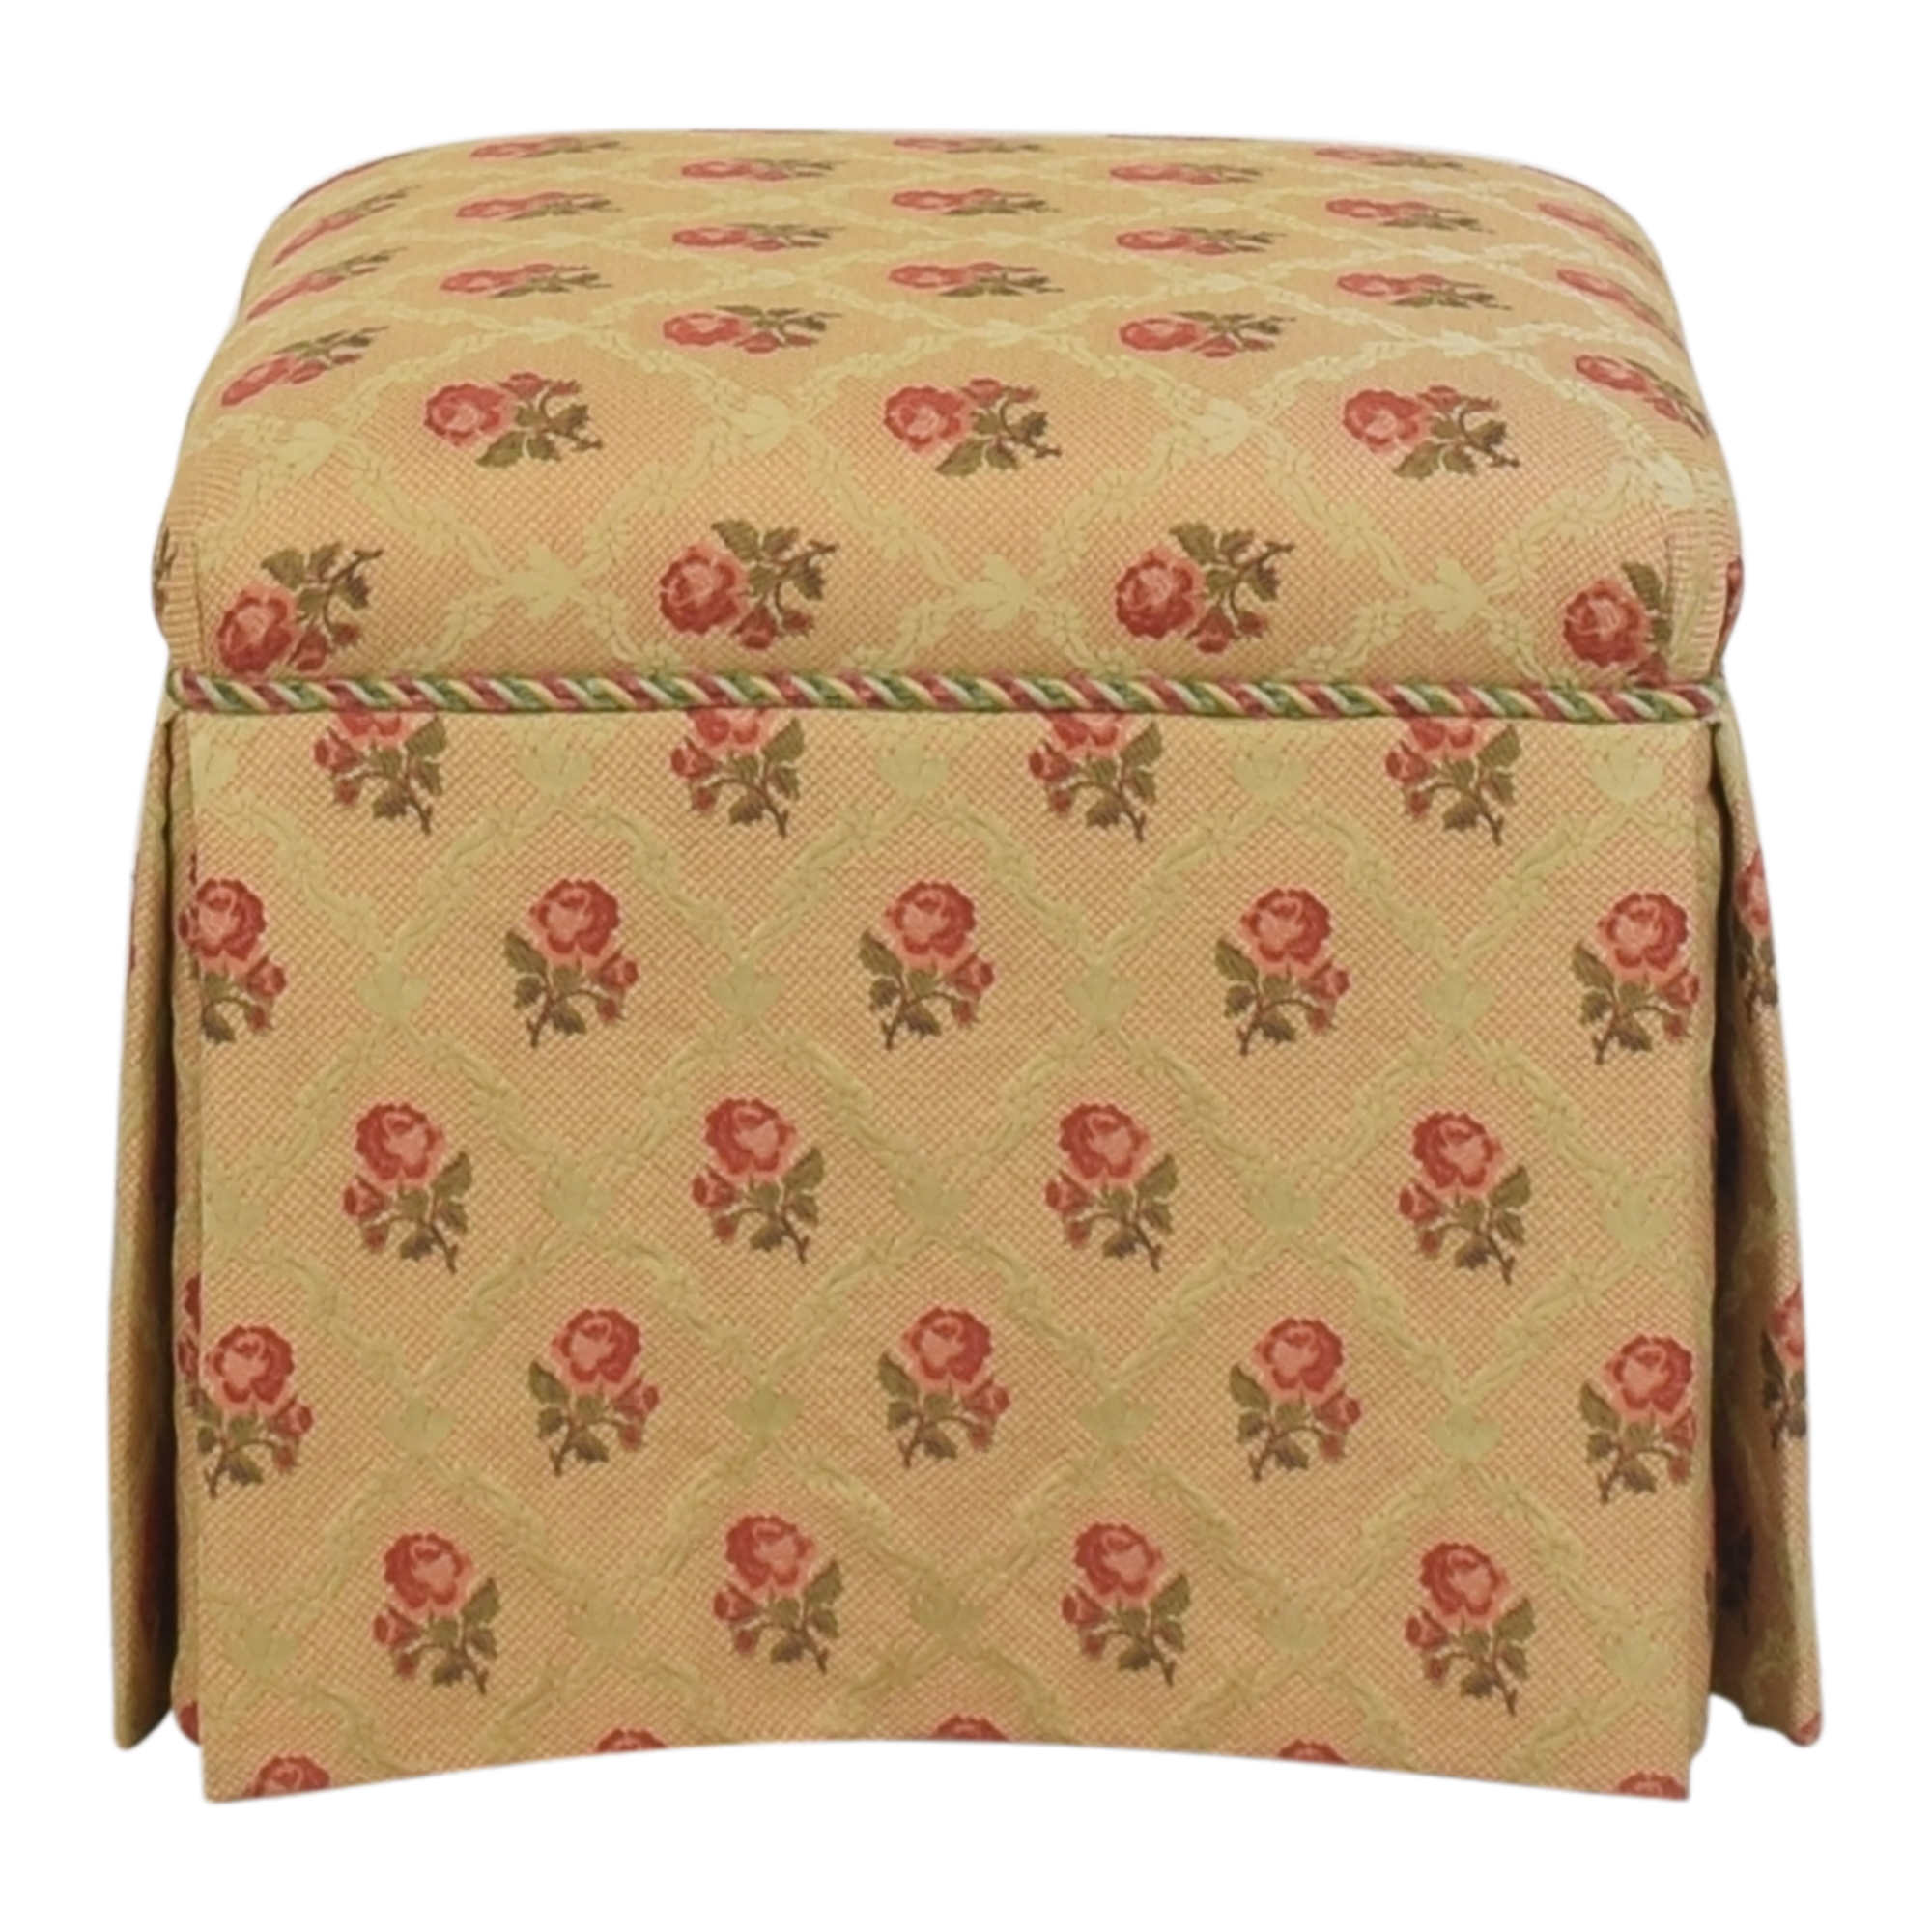 Skirted Square Ottoman used